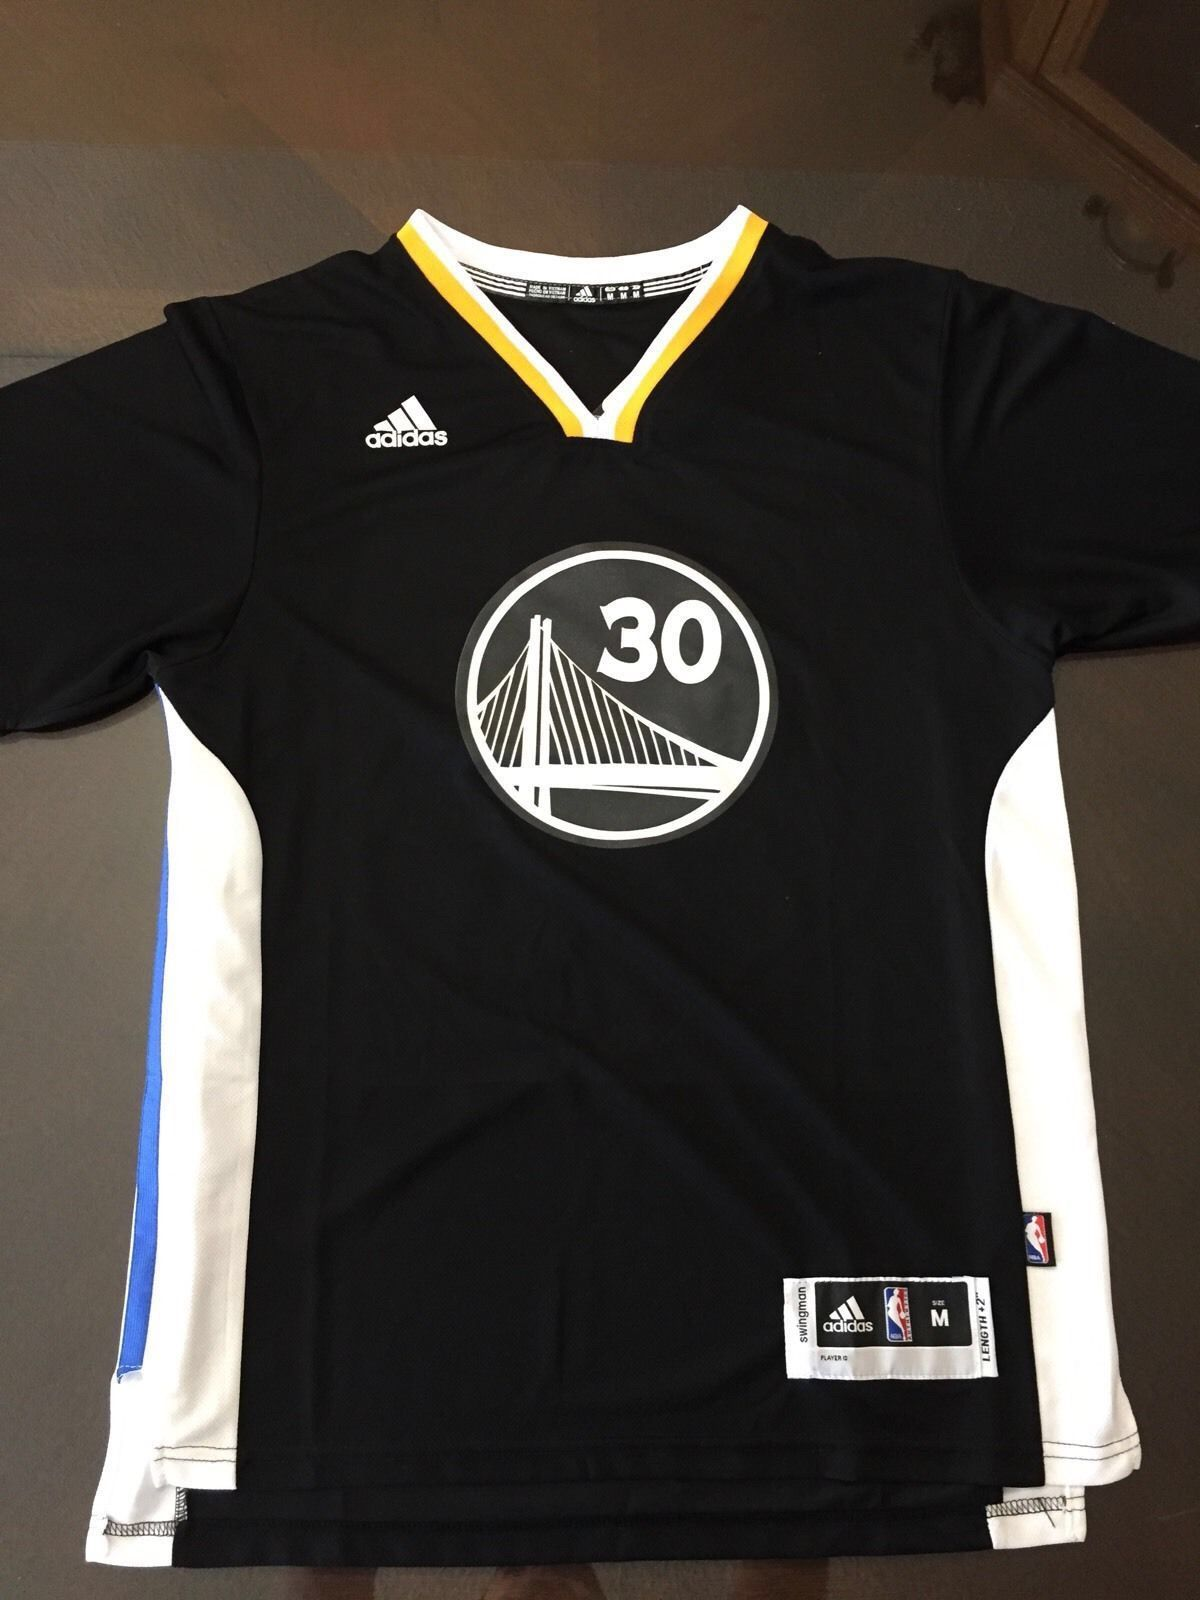 Home all star all star game 2015 comprare canotta nba all - Stephen Curry Golden State Warriors Mens Nba Basketball T Shirt 2015 Jersey Black